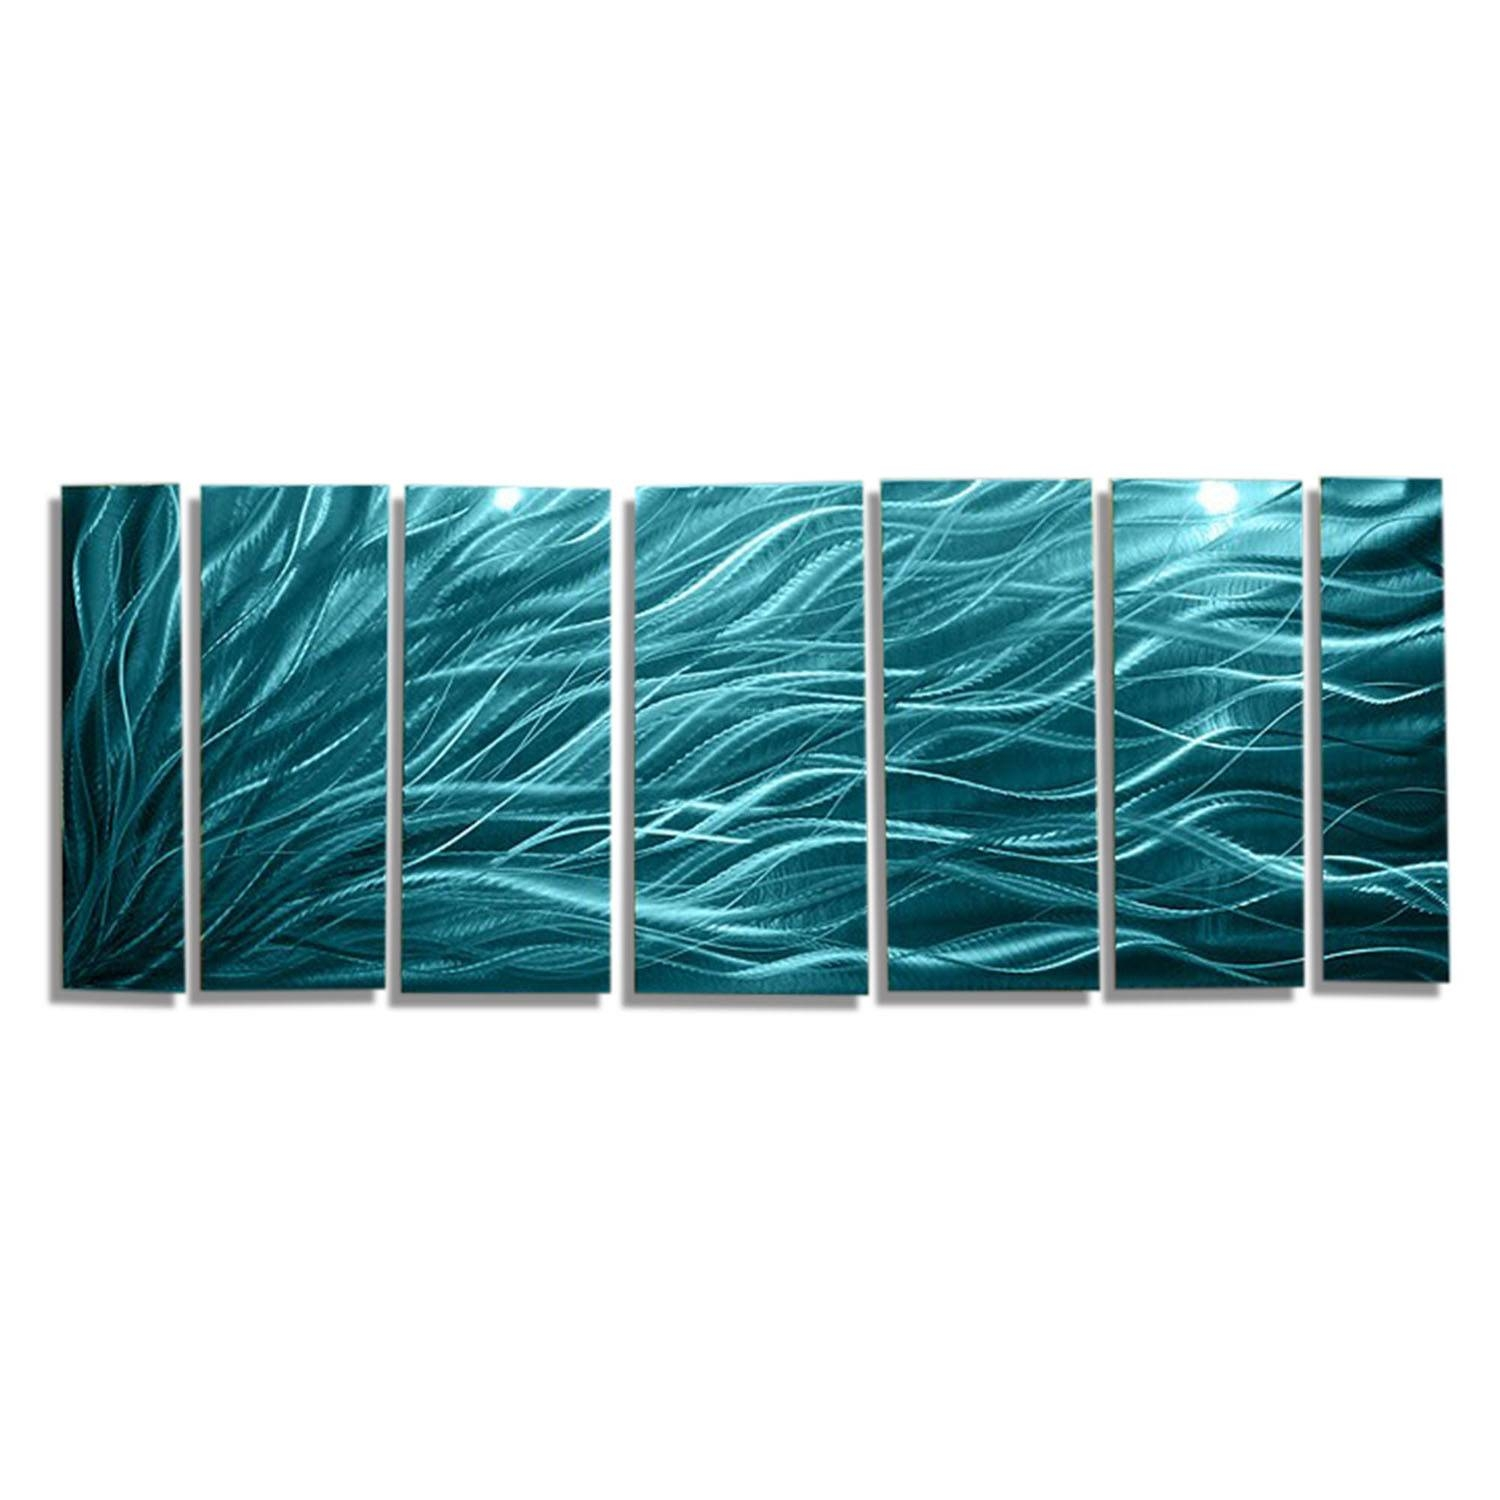 Large Modern Wall Art 20 Photos Large Abstract Metal Wall Art